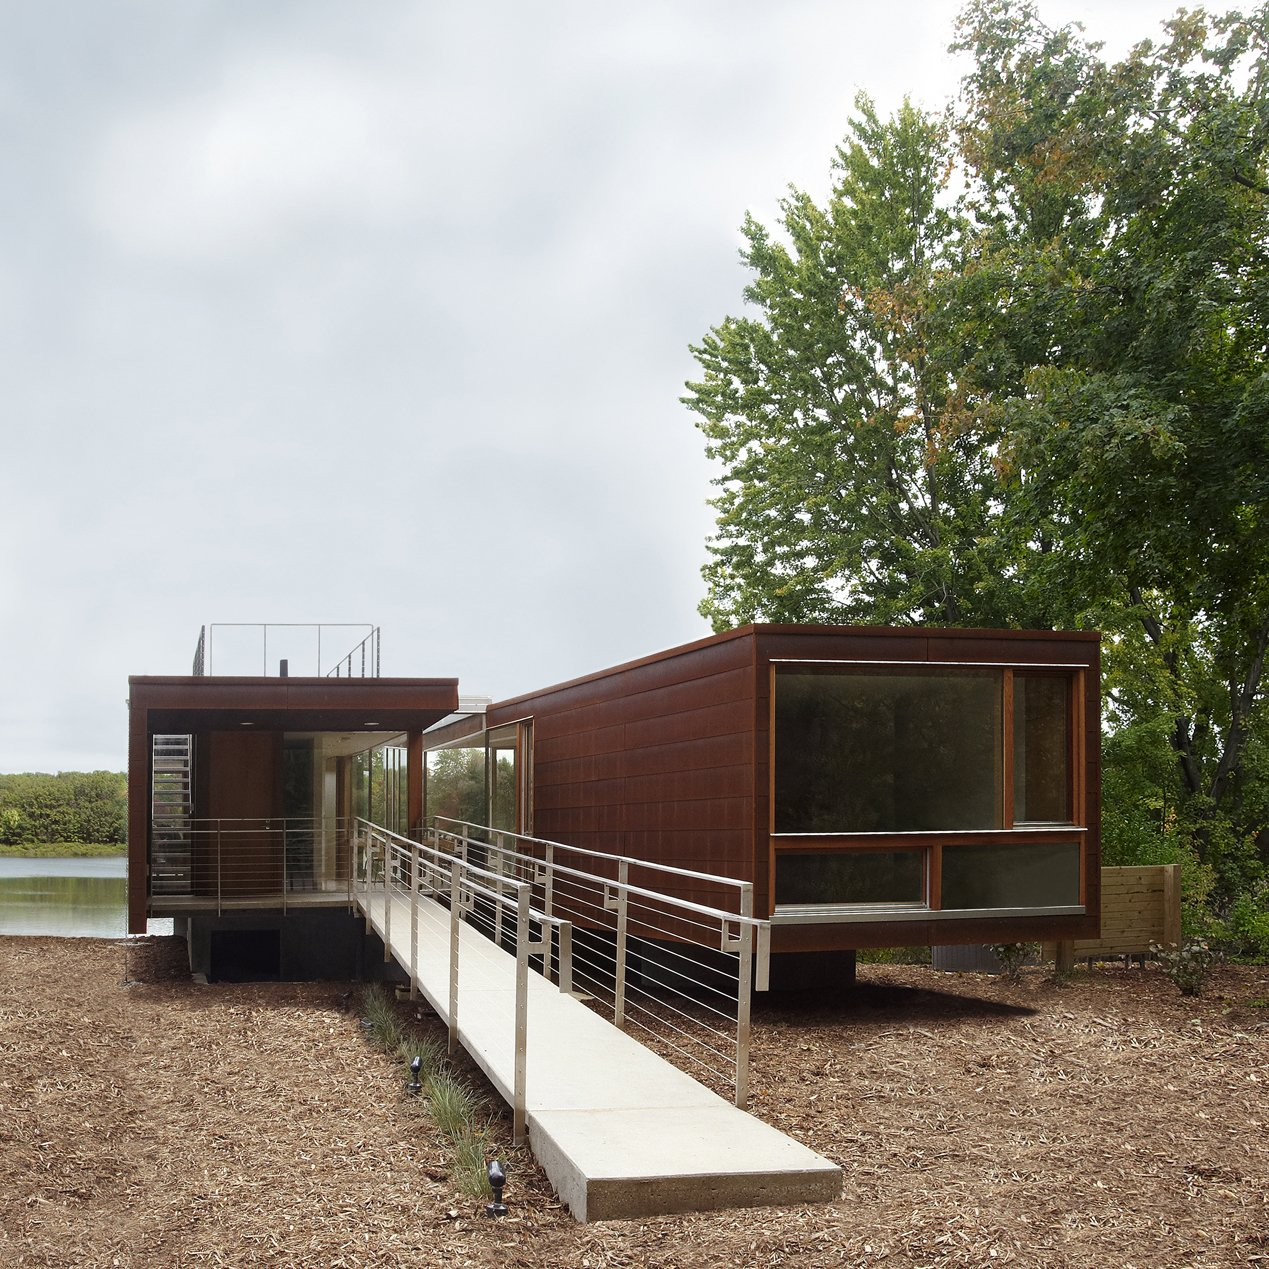 """Architect Jim Garrison of Brooklyn-based Garrison Architects was asked to design a lakeside retreat for visiting families at a boarding school for troubled teens, Star Commonwealth, in Albion, Michigan. To drastically reduce academic interruption and cut site noise, Garrison decided early on to create an 1,100-square-foot modular building dubbed Koby, with two bedrooms on opposite sides of the structure and a common dining area in the middle """"as a therapeutic space for families to gather and eat together.""""  Search """"modern lakeside retreat stripped down basics"""" from Modular Retreat"""